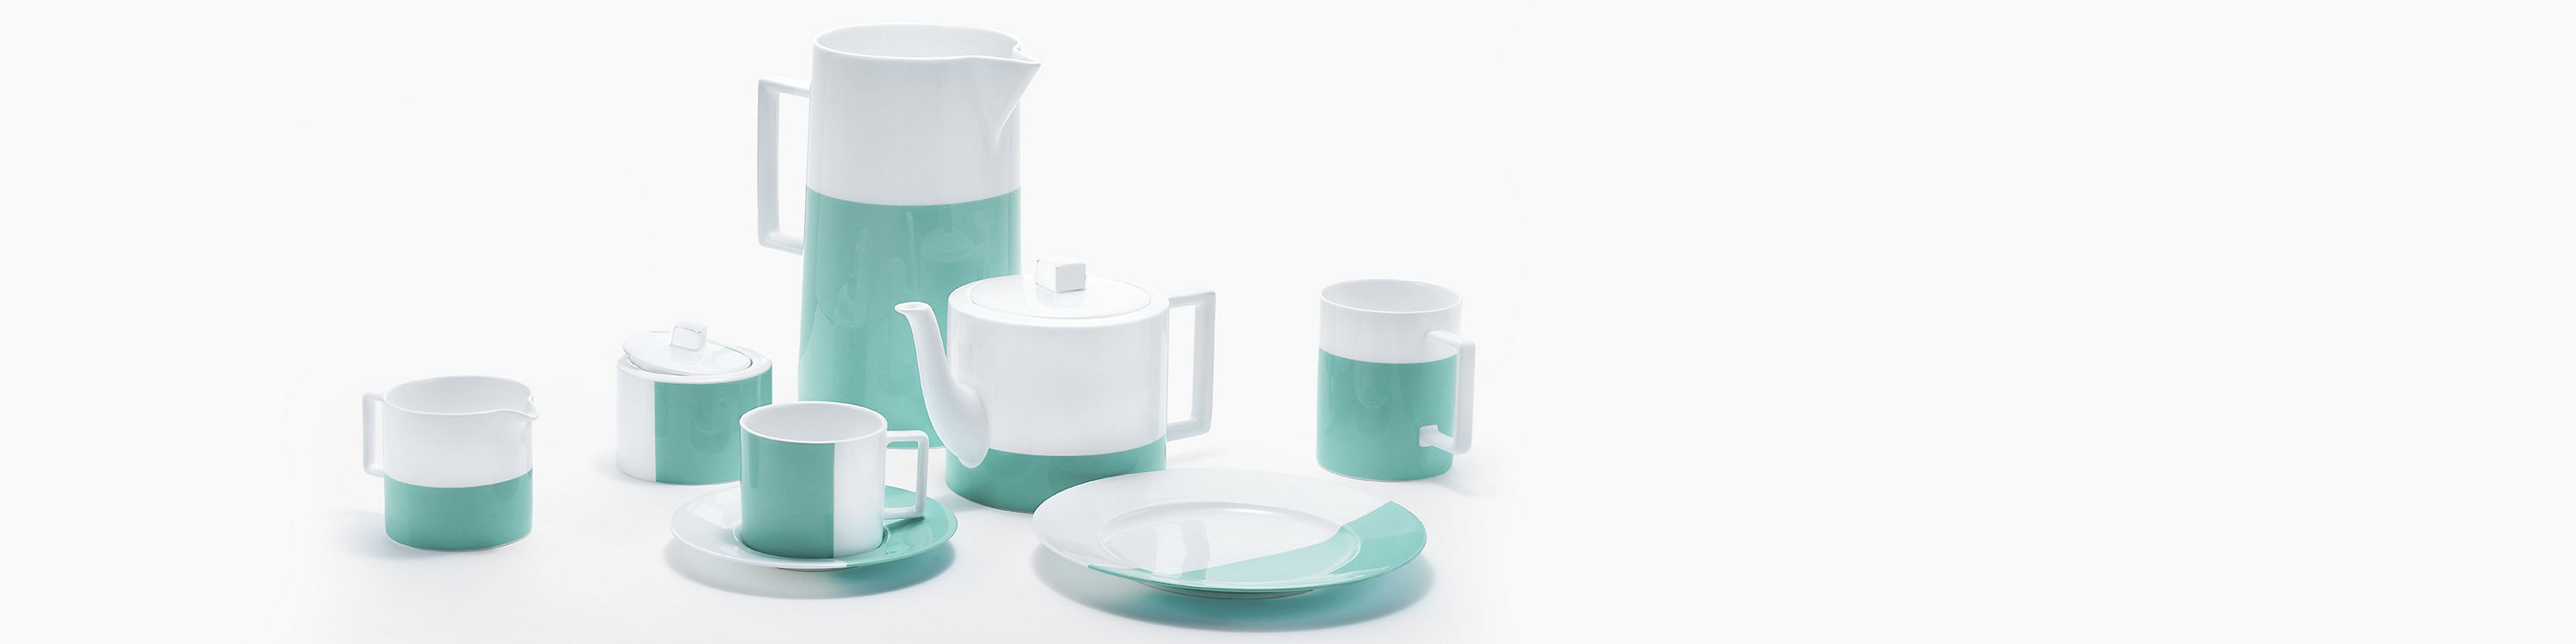 Tiffany & Co. Coffee & Tea Sets